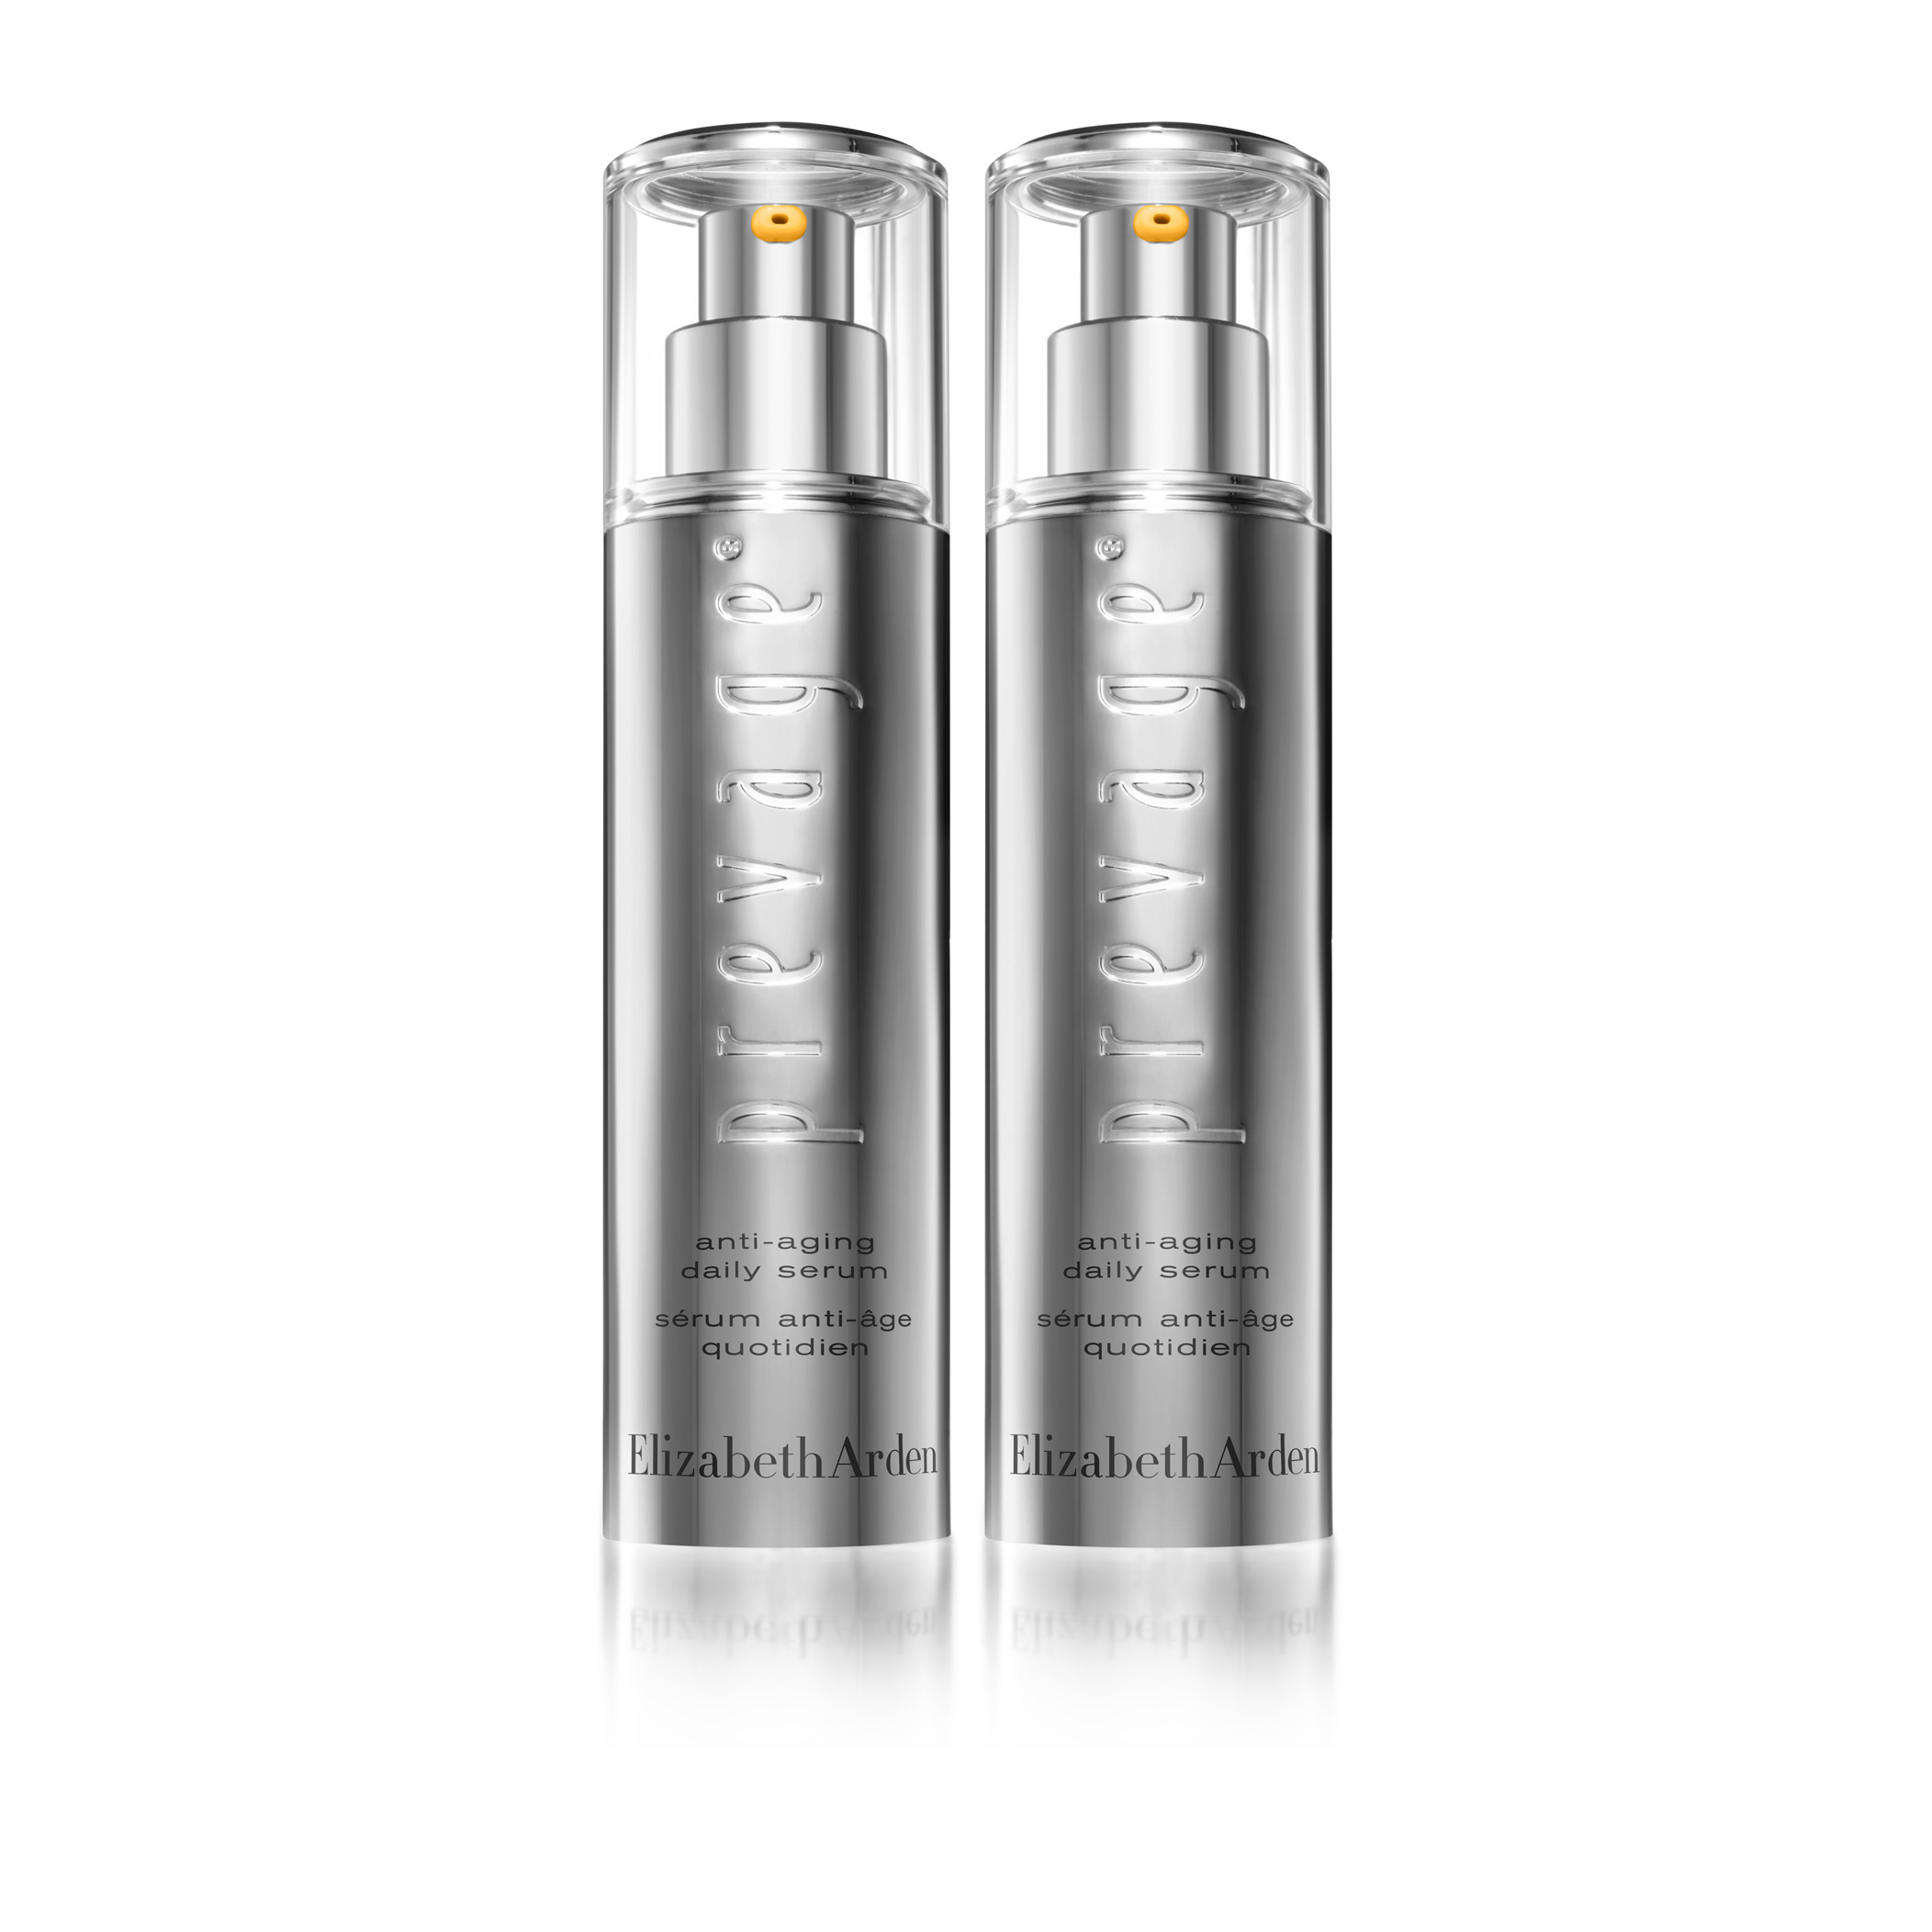 29d2b2d95db 2-Pack PREVAGE® Anti-Aging Daily Serum | Elizabeth Arden